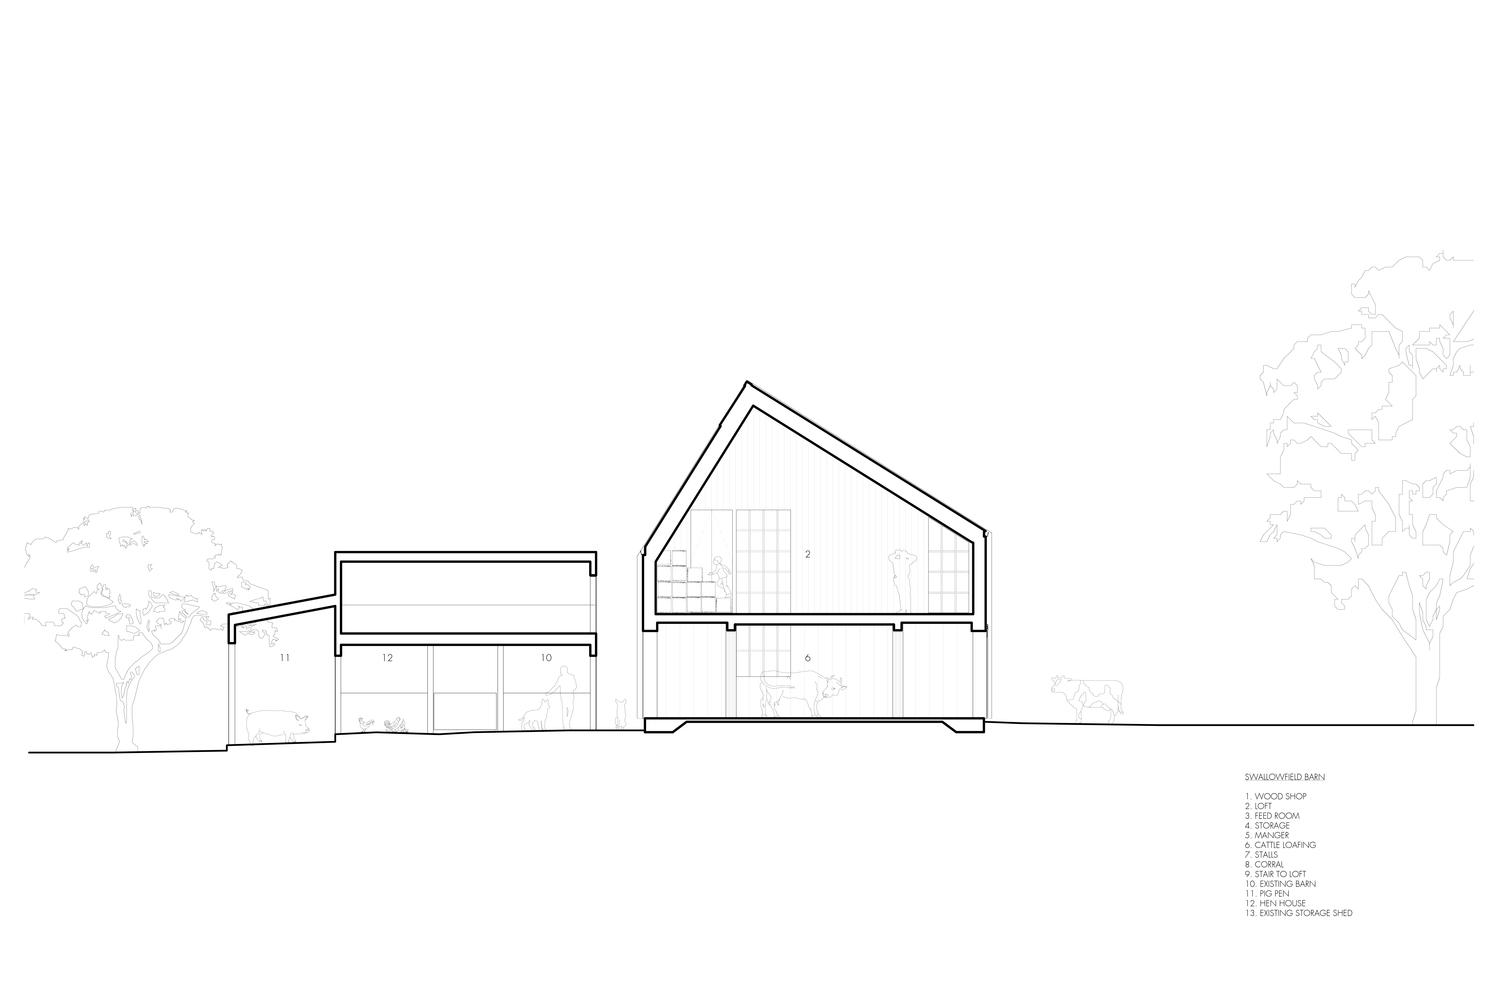 hight resolution of swallowfield barn section